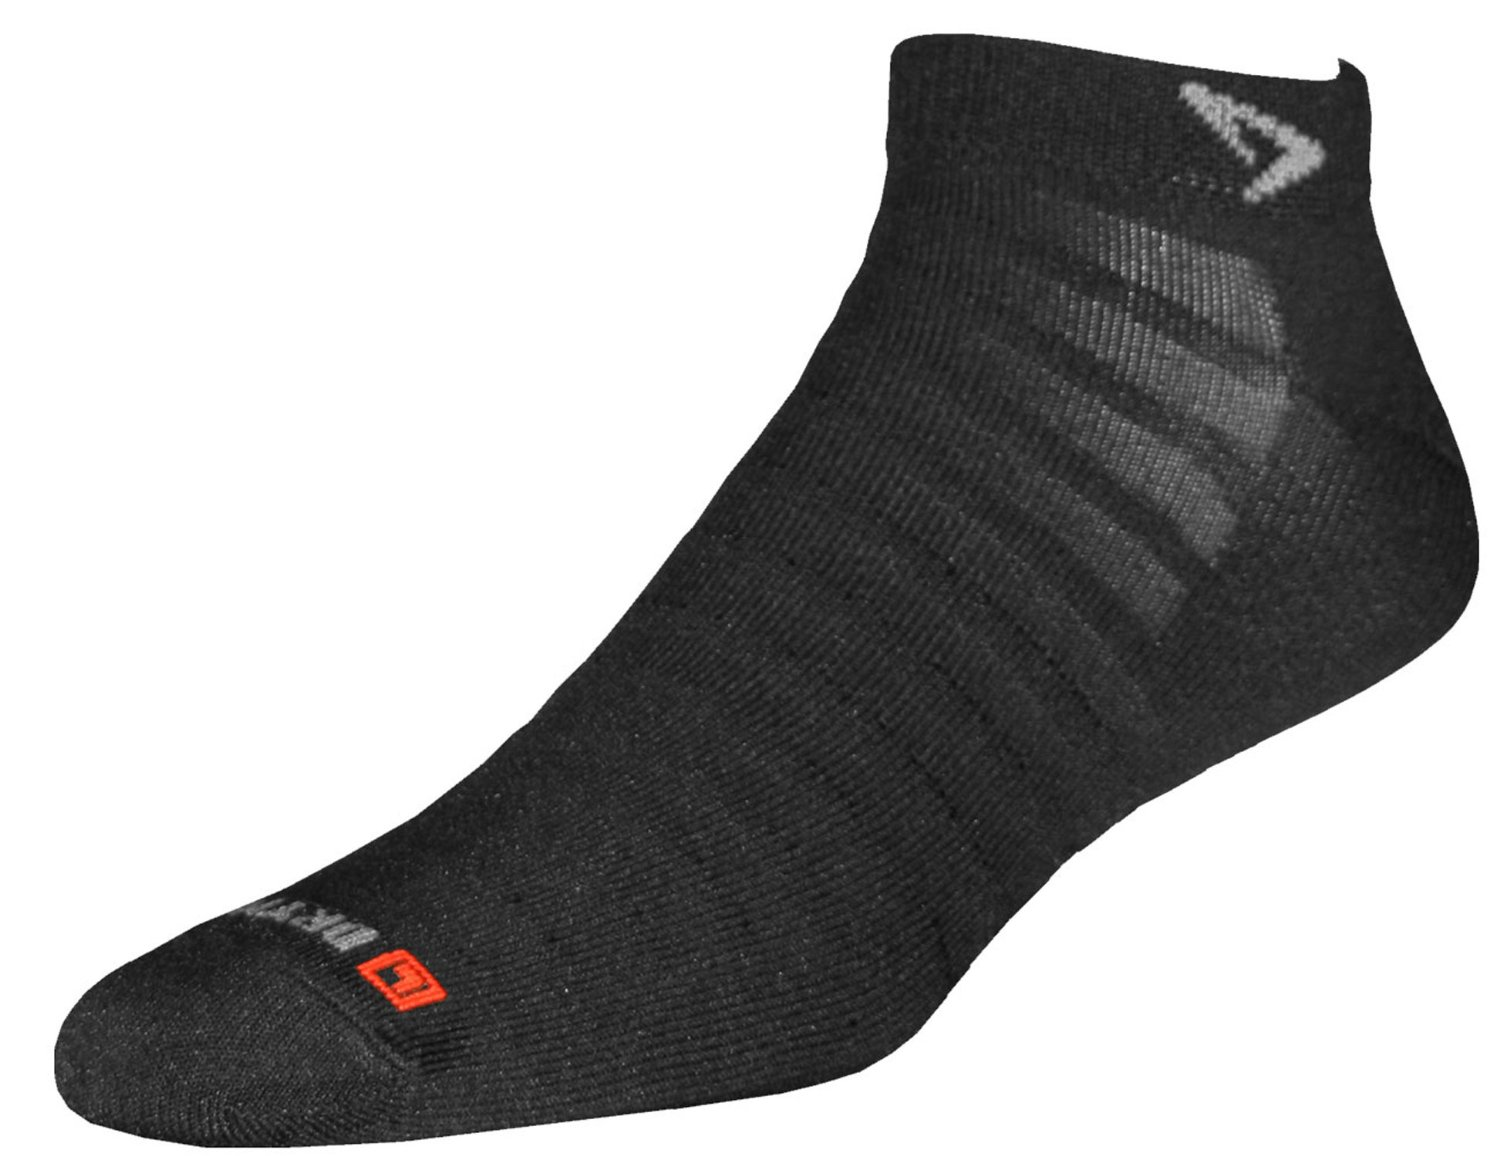 Drymax Run Hyper Thin Mini Crew Socks